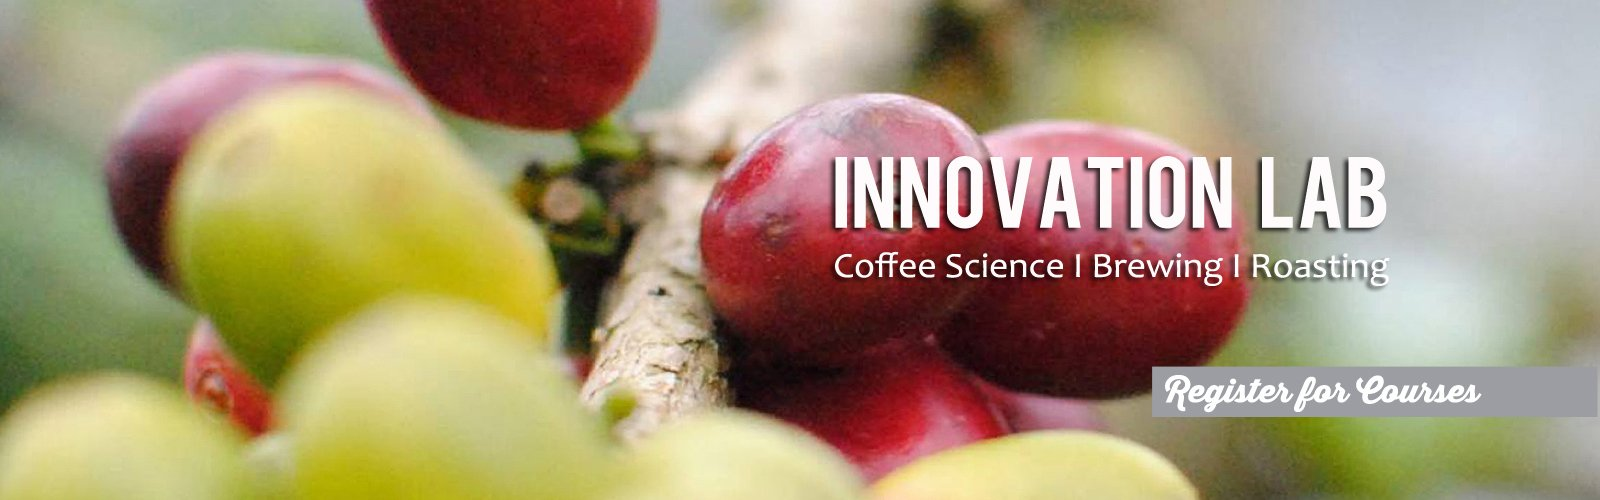 Innovation Lab_Cherries Revised